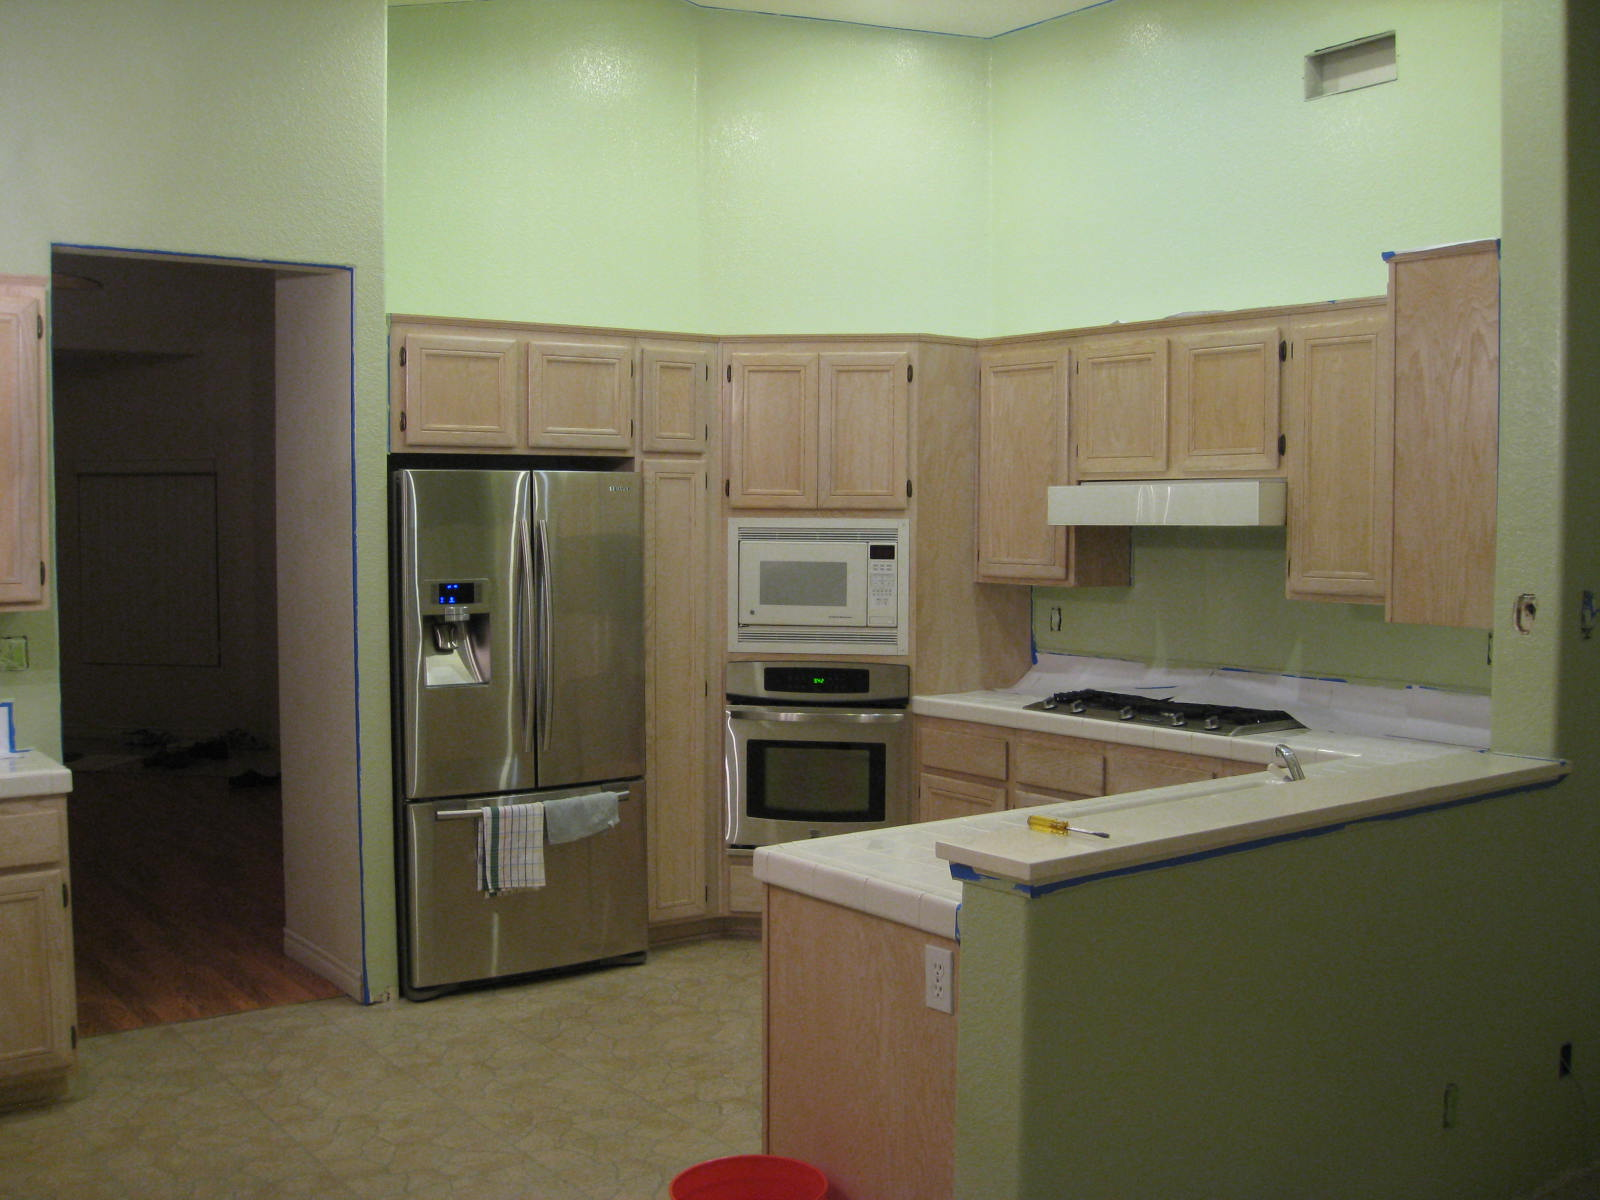 Kitchen Color Ideas With Oak Cabinets choosing kitchen paint colors how to choose kitchen paint colors